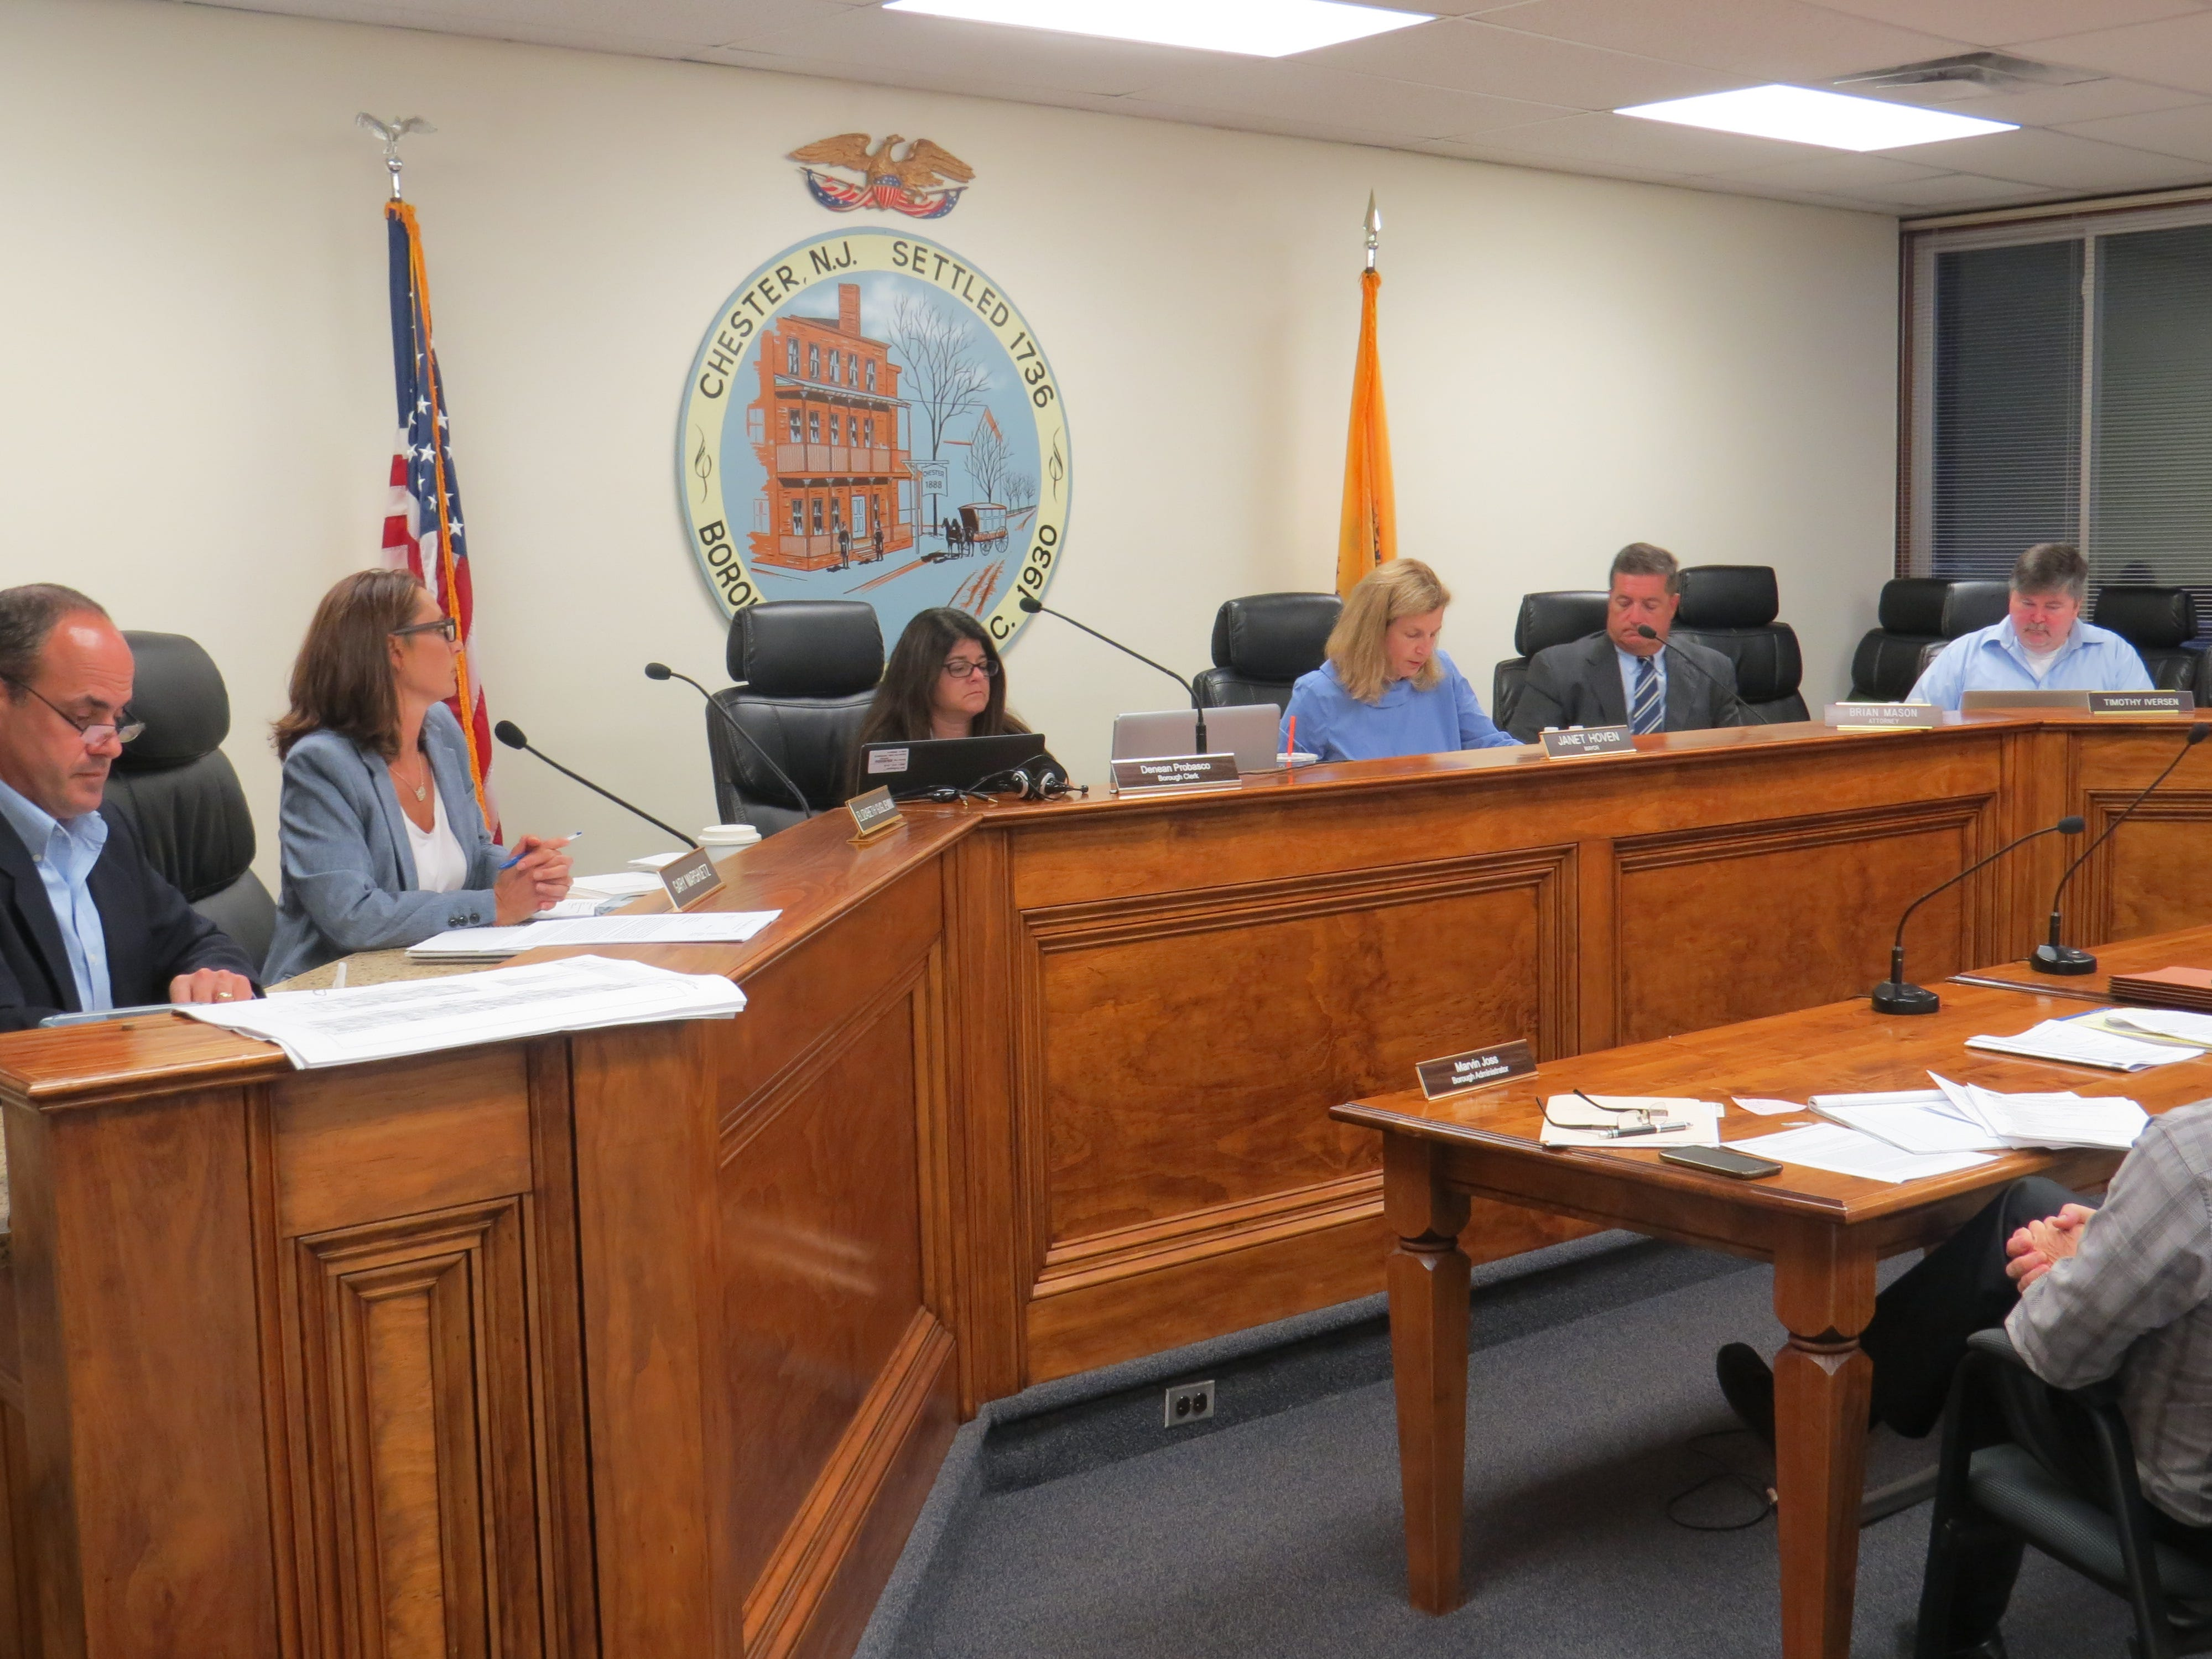 The fate of the Larison's Turkey Farm property was discussed at the Chester Council meeting on Sept. 18, 2018.